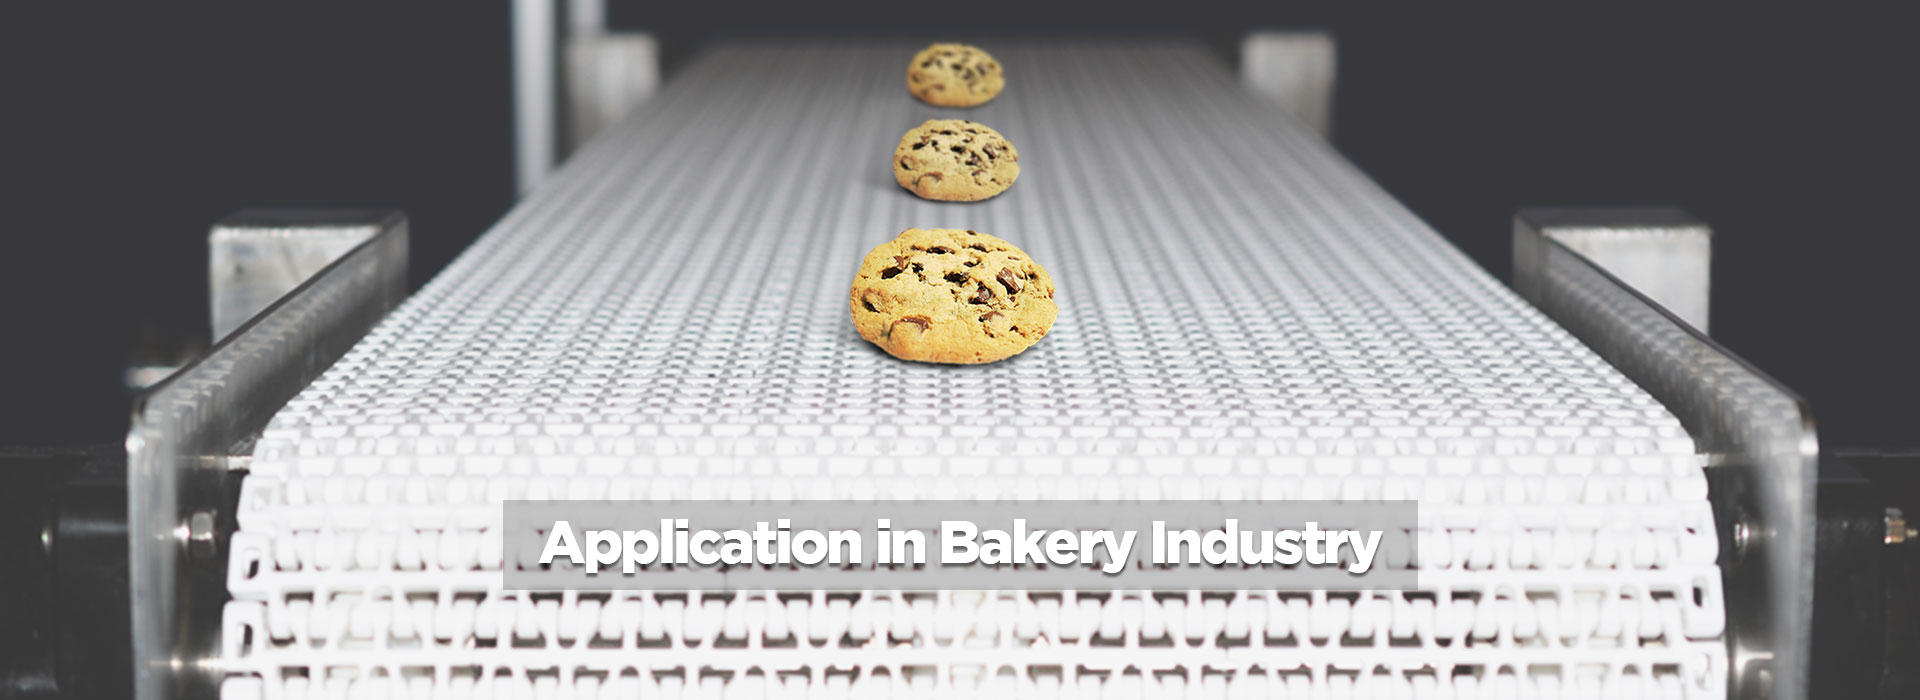 Application in Bakery Industry